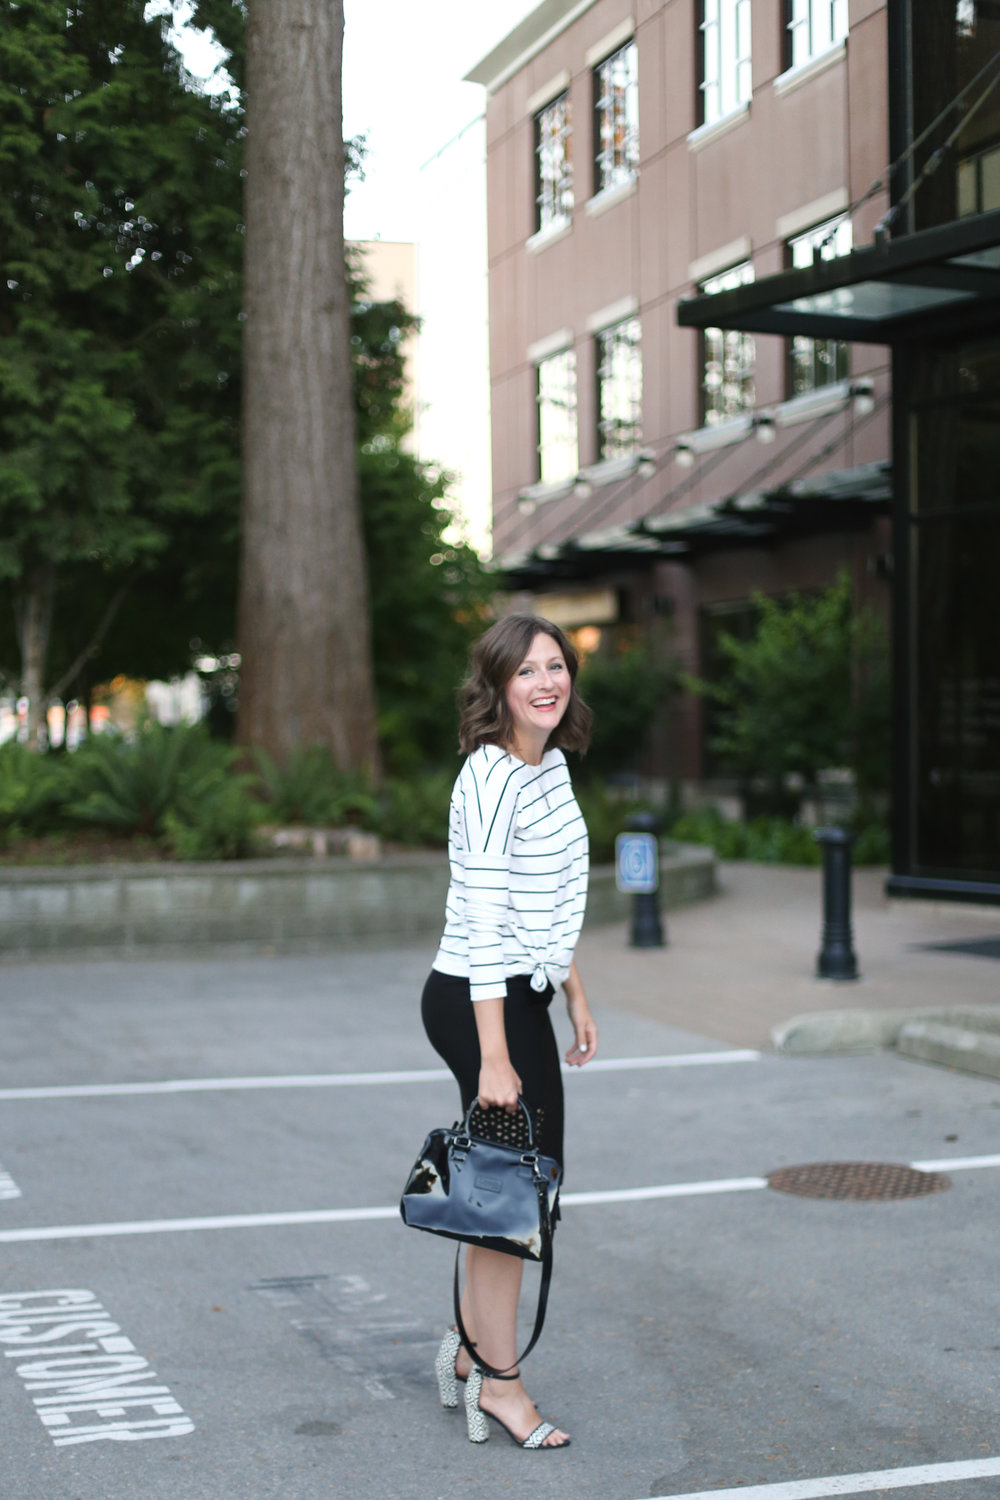 Street style: Minimalist fashion blog outfits.